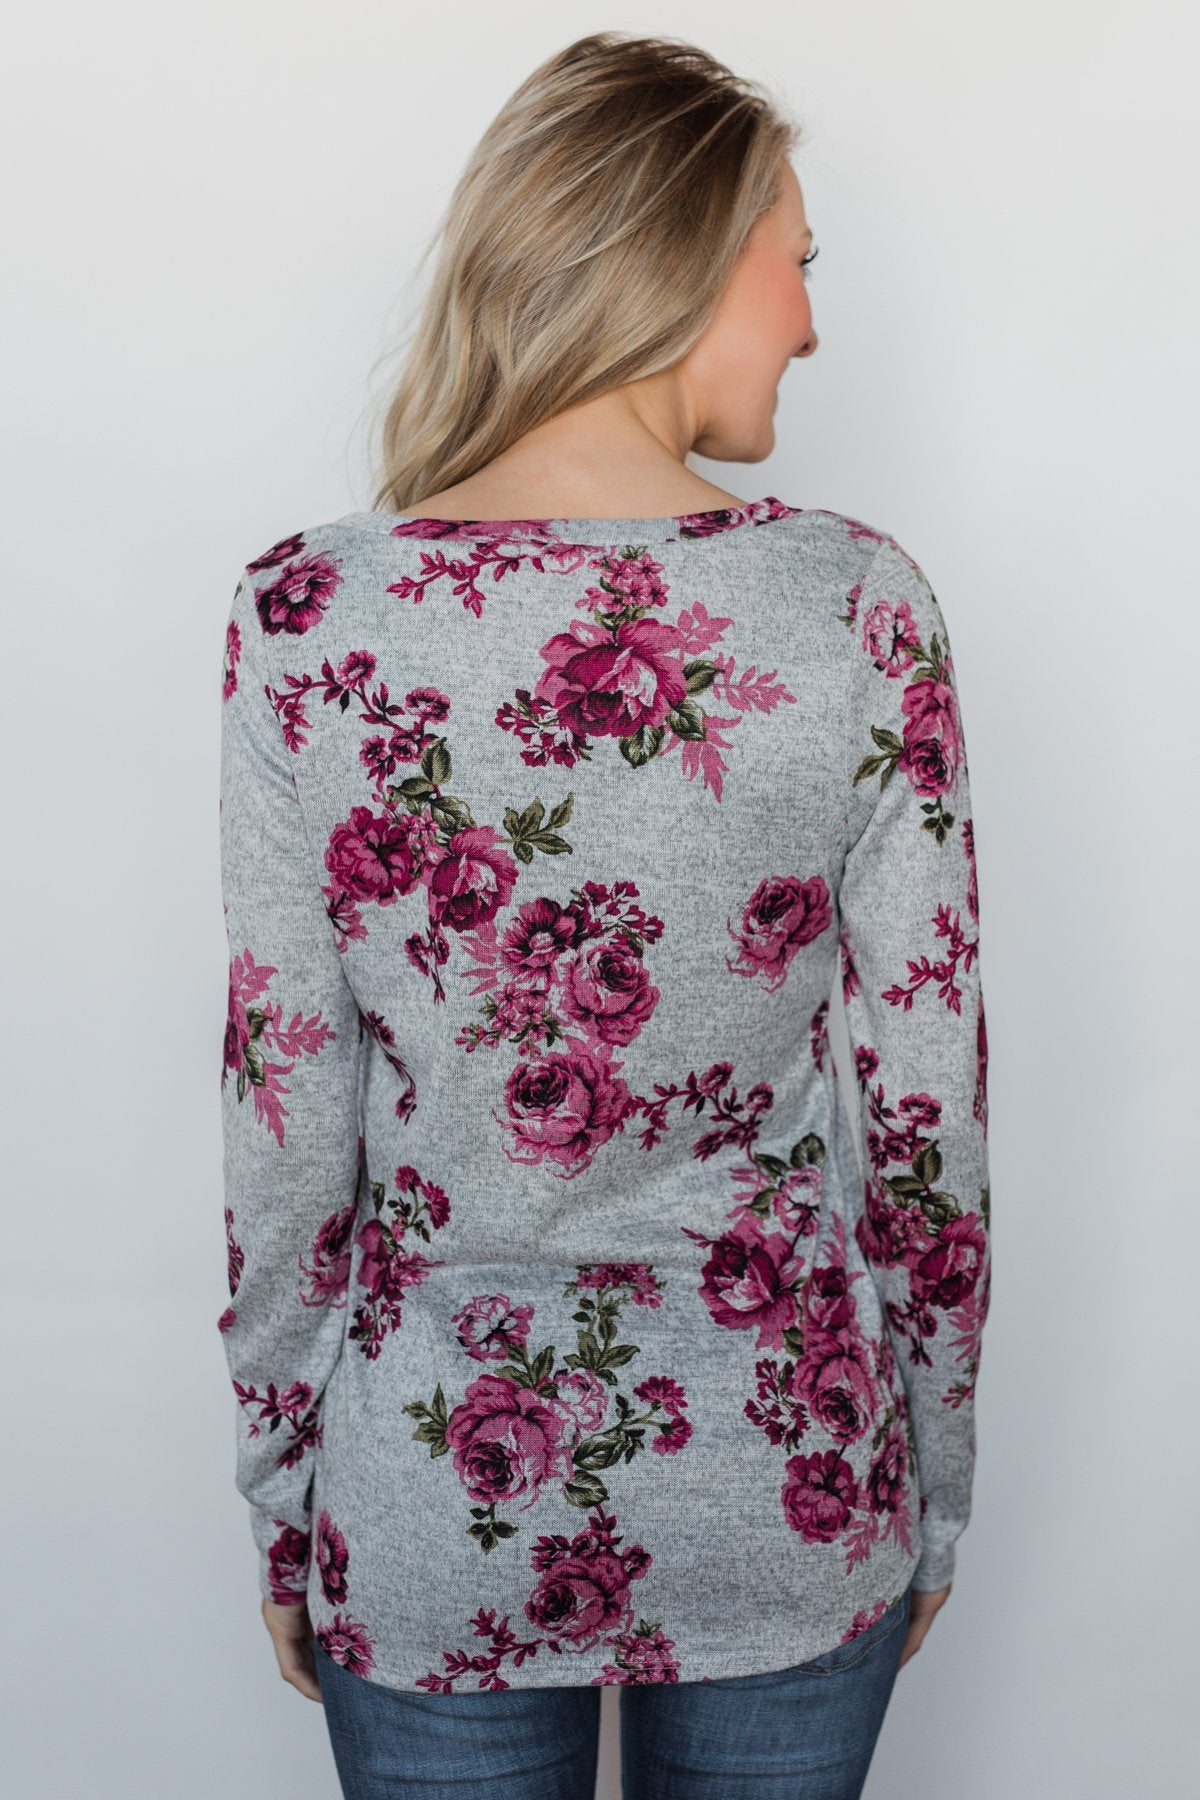 Love's in the Air Floral Pullover Top- Grey & Pink